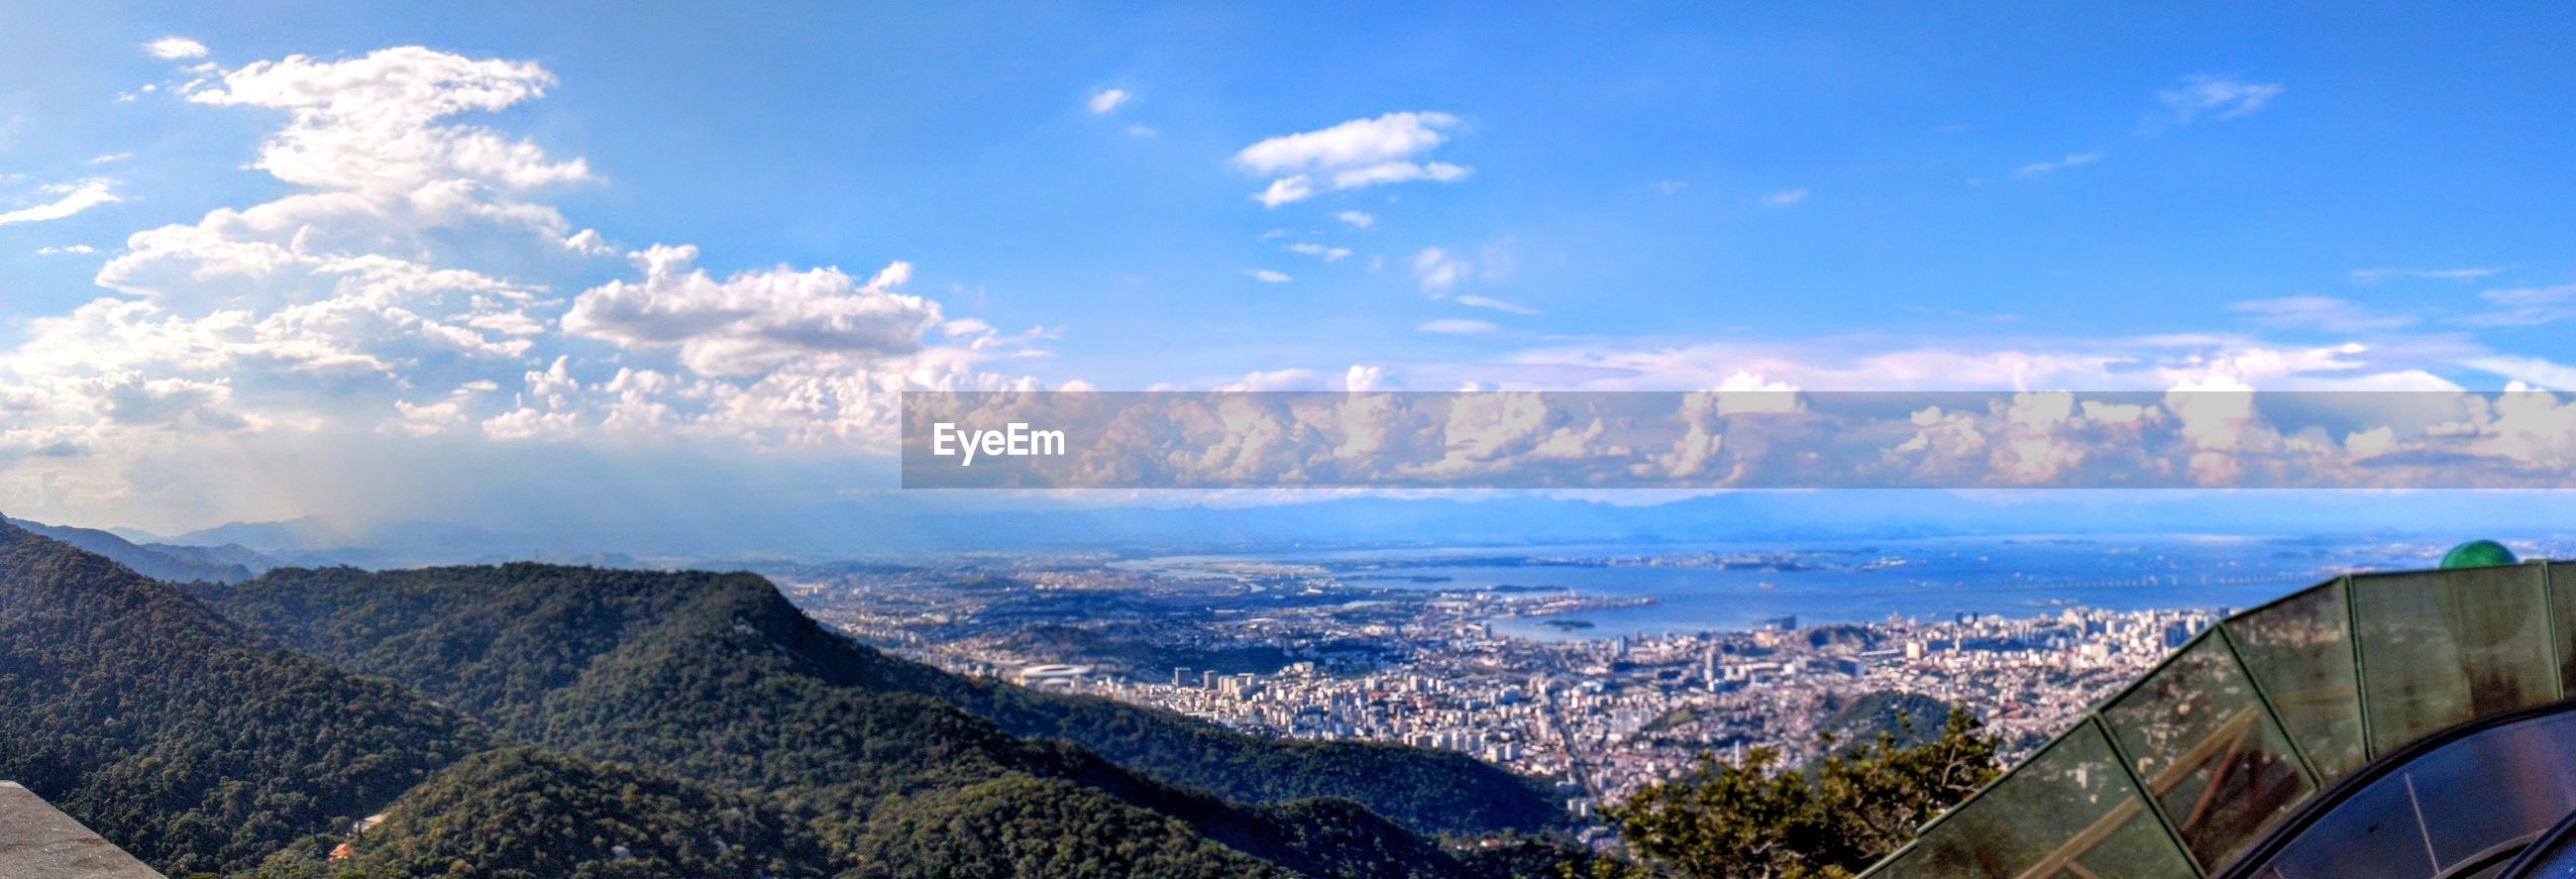 HIGH ANGLE VIEW OF CITYSCAPE AND MOUNTAINS AGAINST SKY